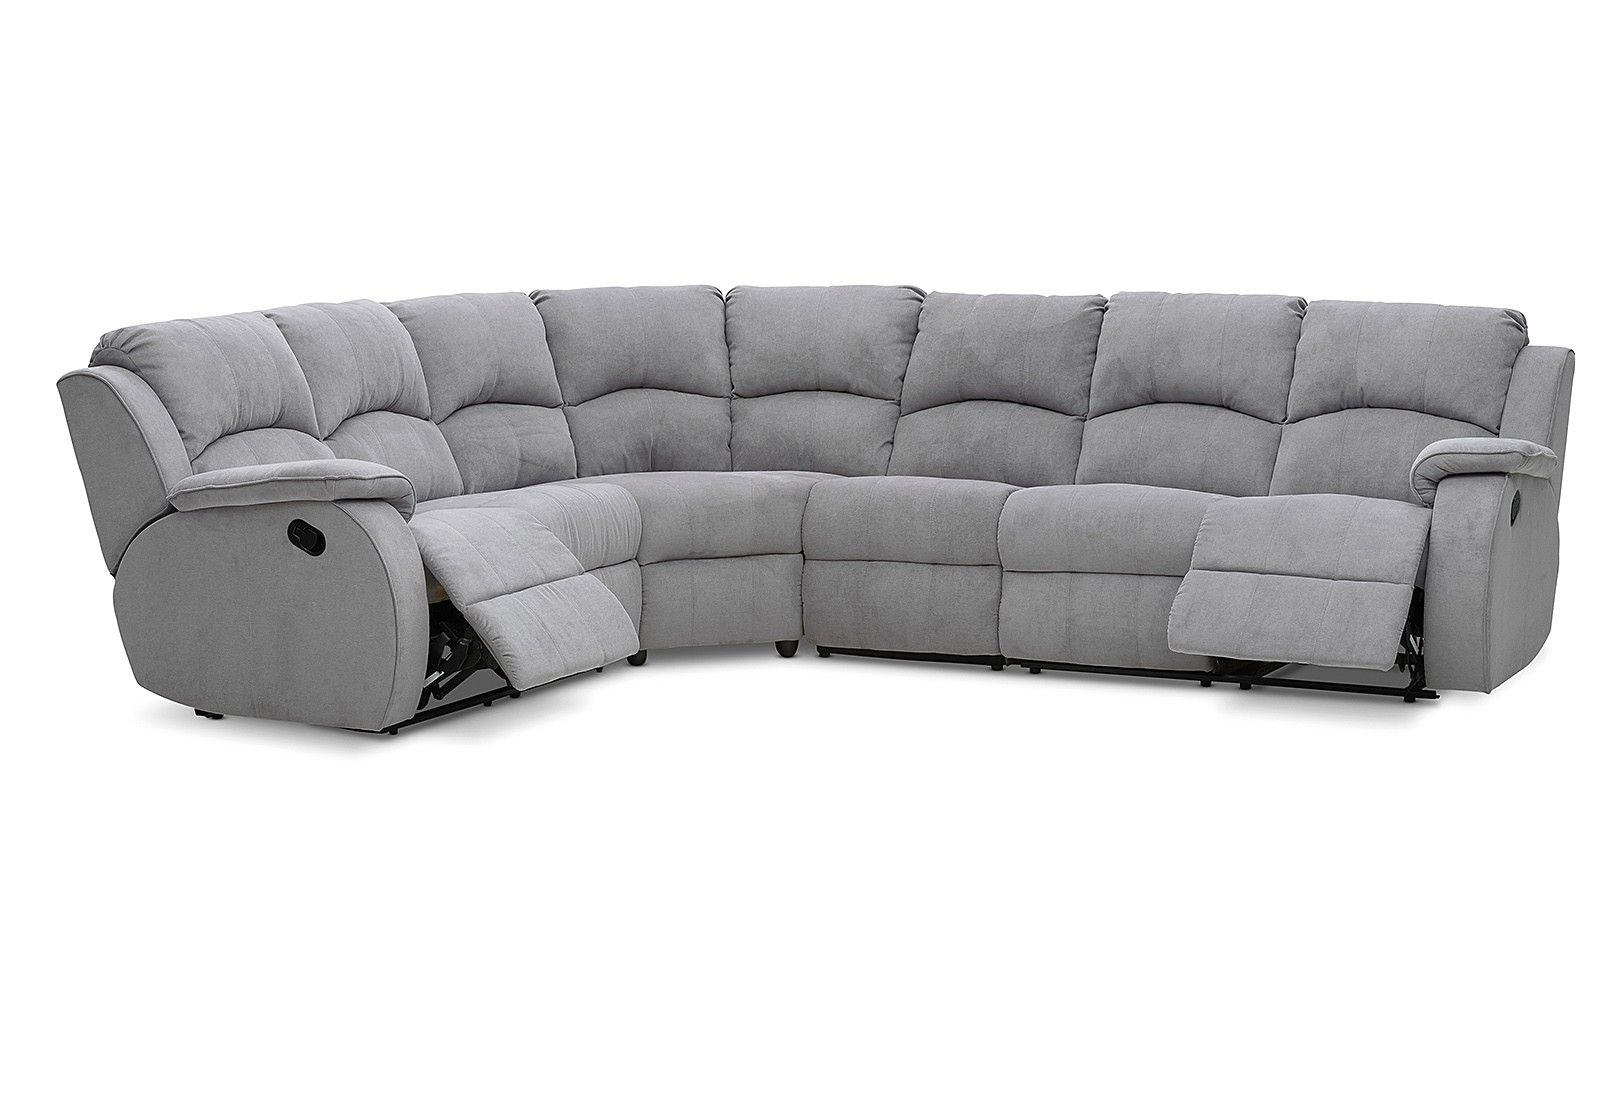 Saloon Fabric Corner Lounge With Inbuilt Recliners Amart Furniture Recliner Corner Sofa Grey Corner Sofa Lounge Furniture